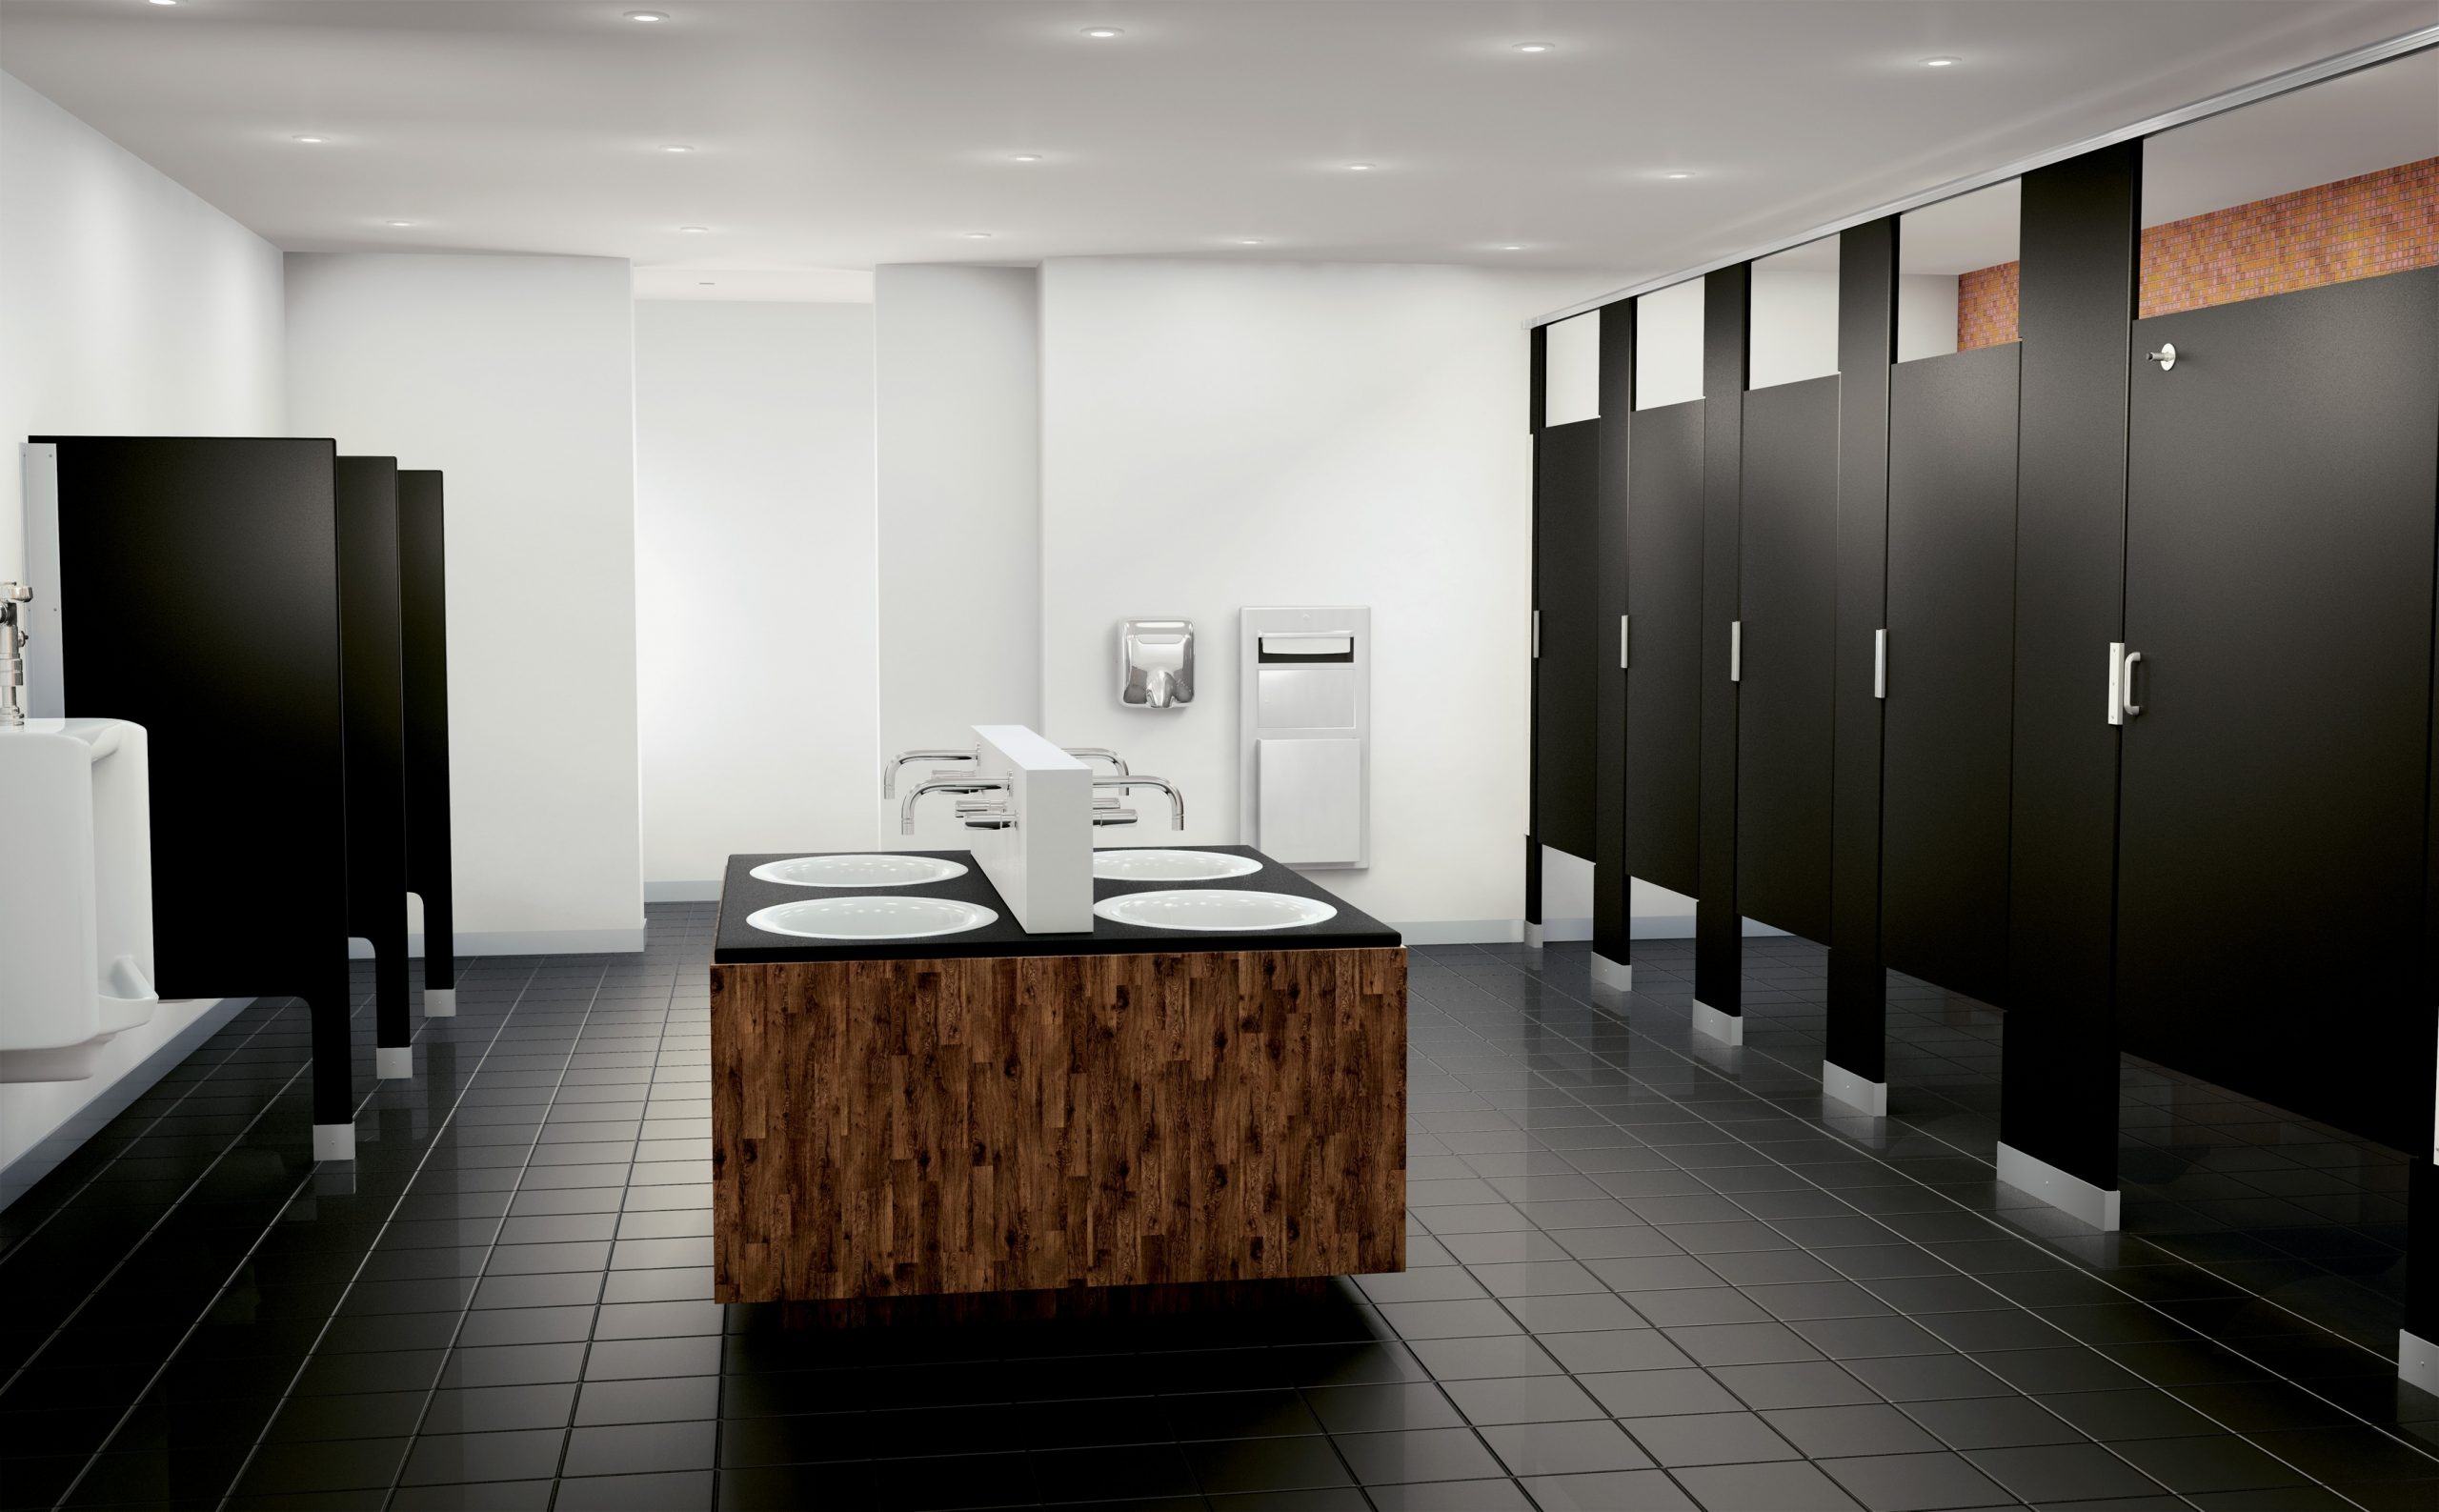 Ada Bathroom Requirements: What Small Businesses Need To Commercial Bathroom Stalls Design